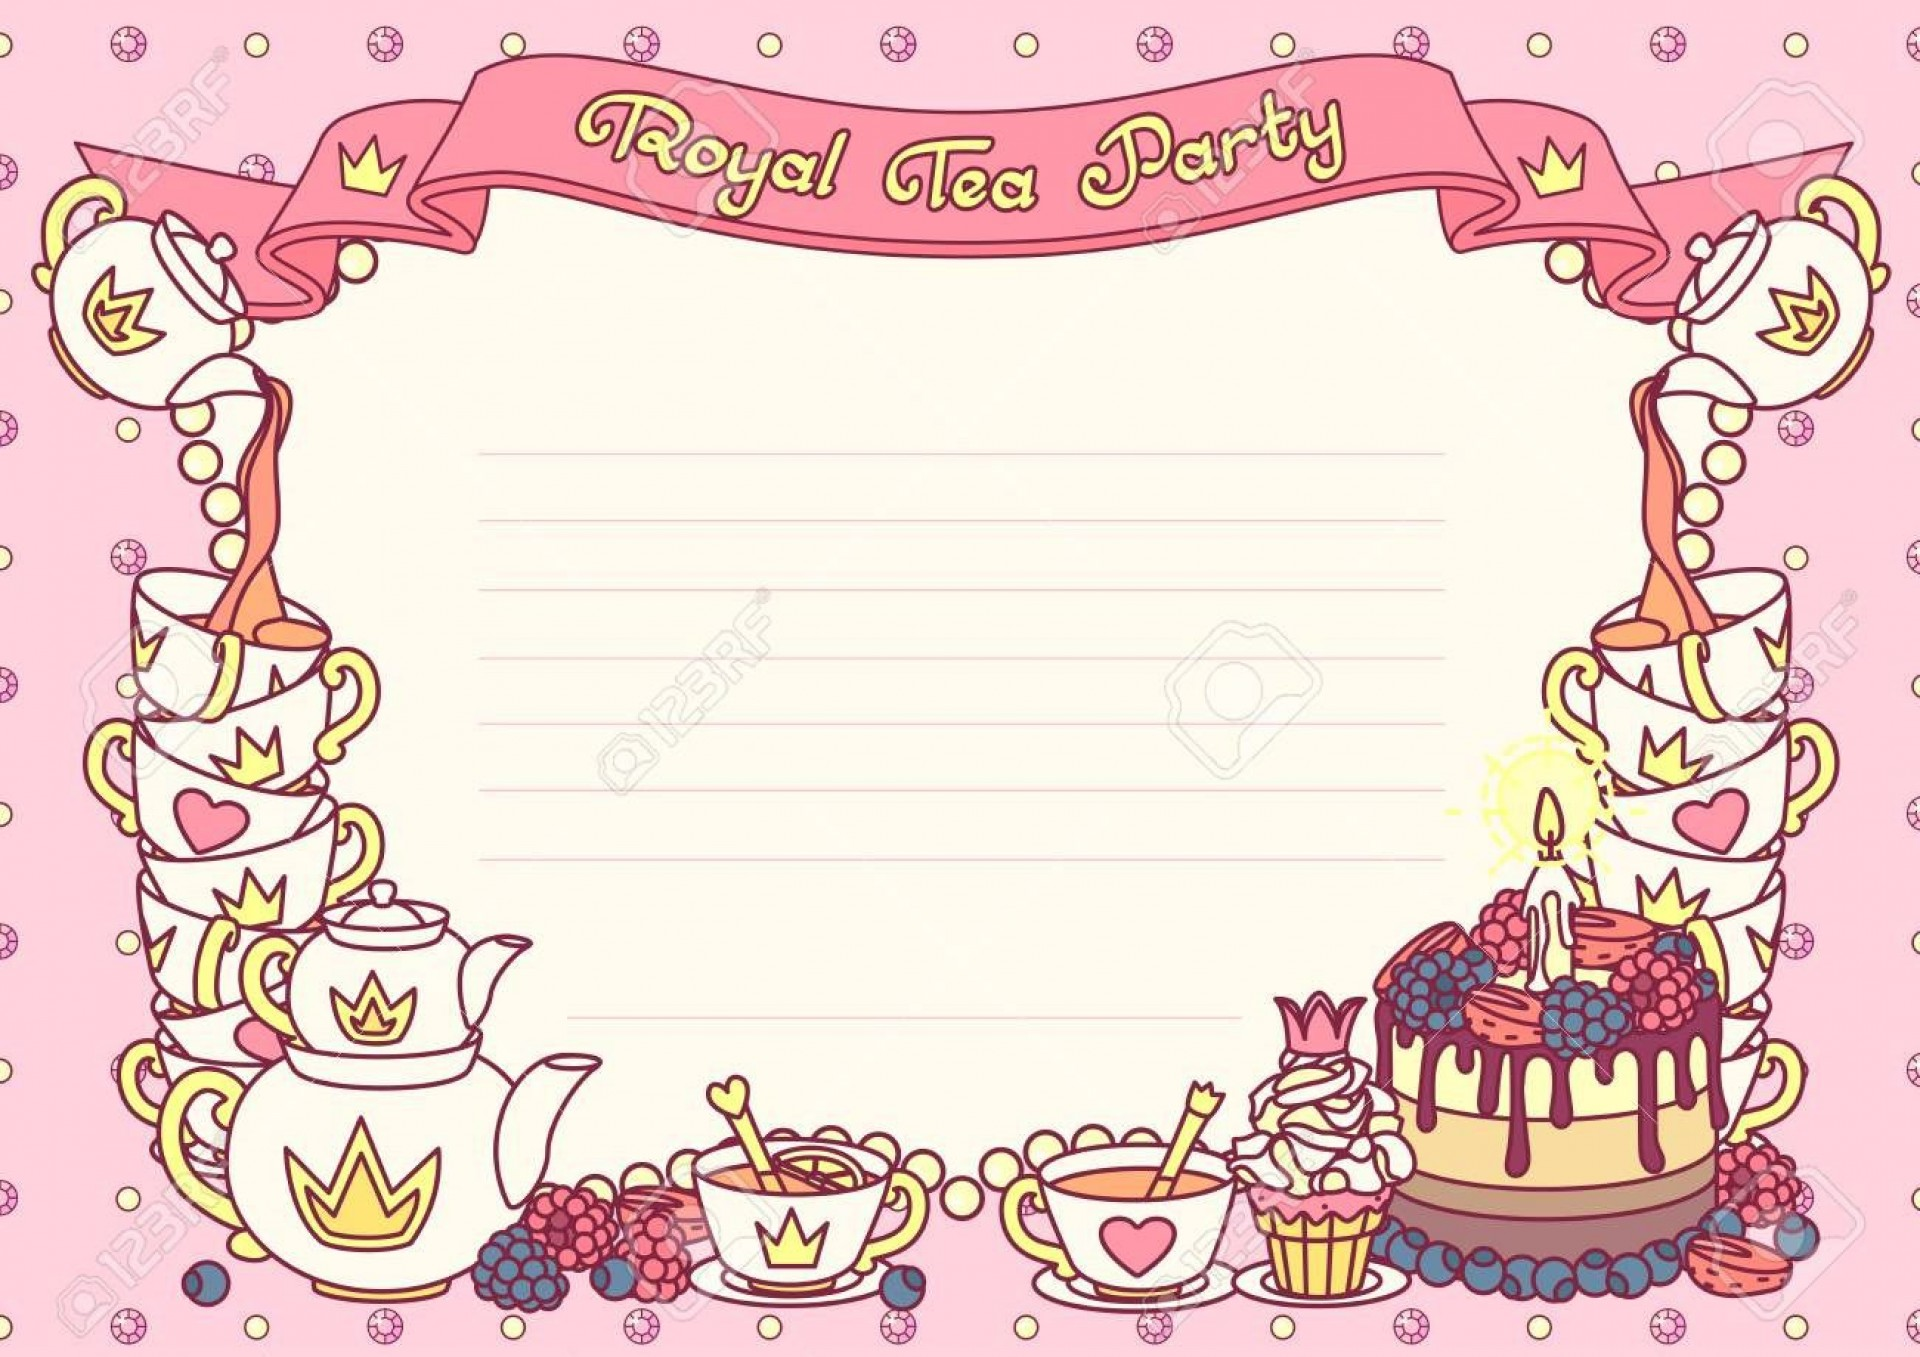 005 Rare Tea Party Invitation Template Image  Vintage Free Editable Card Pdf1920